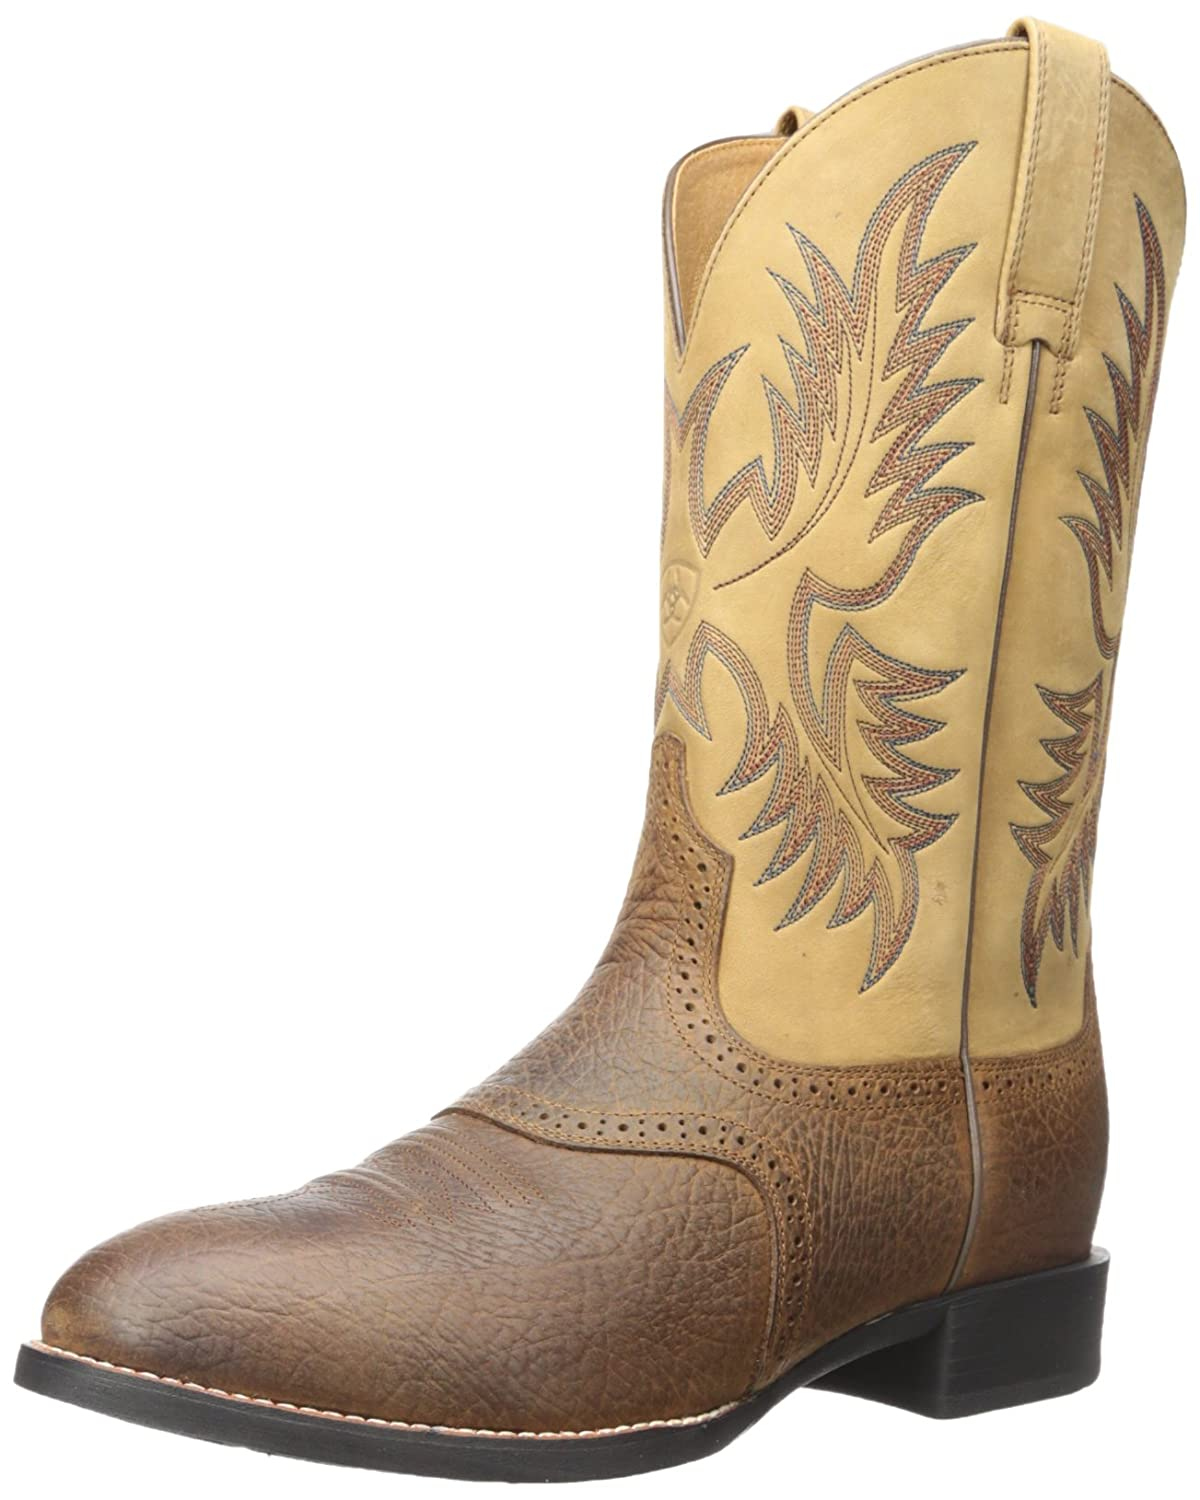 Ariat Men's Heritage Stockman Western Boot B00JAJJJCW 11 B US|Tumbled Brown/Beige